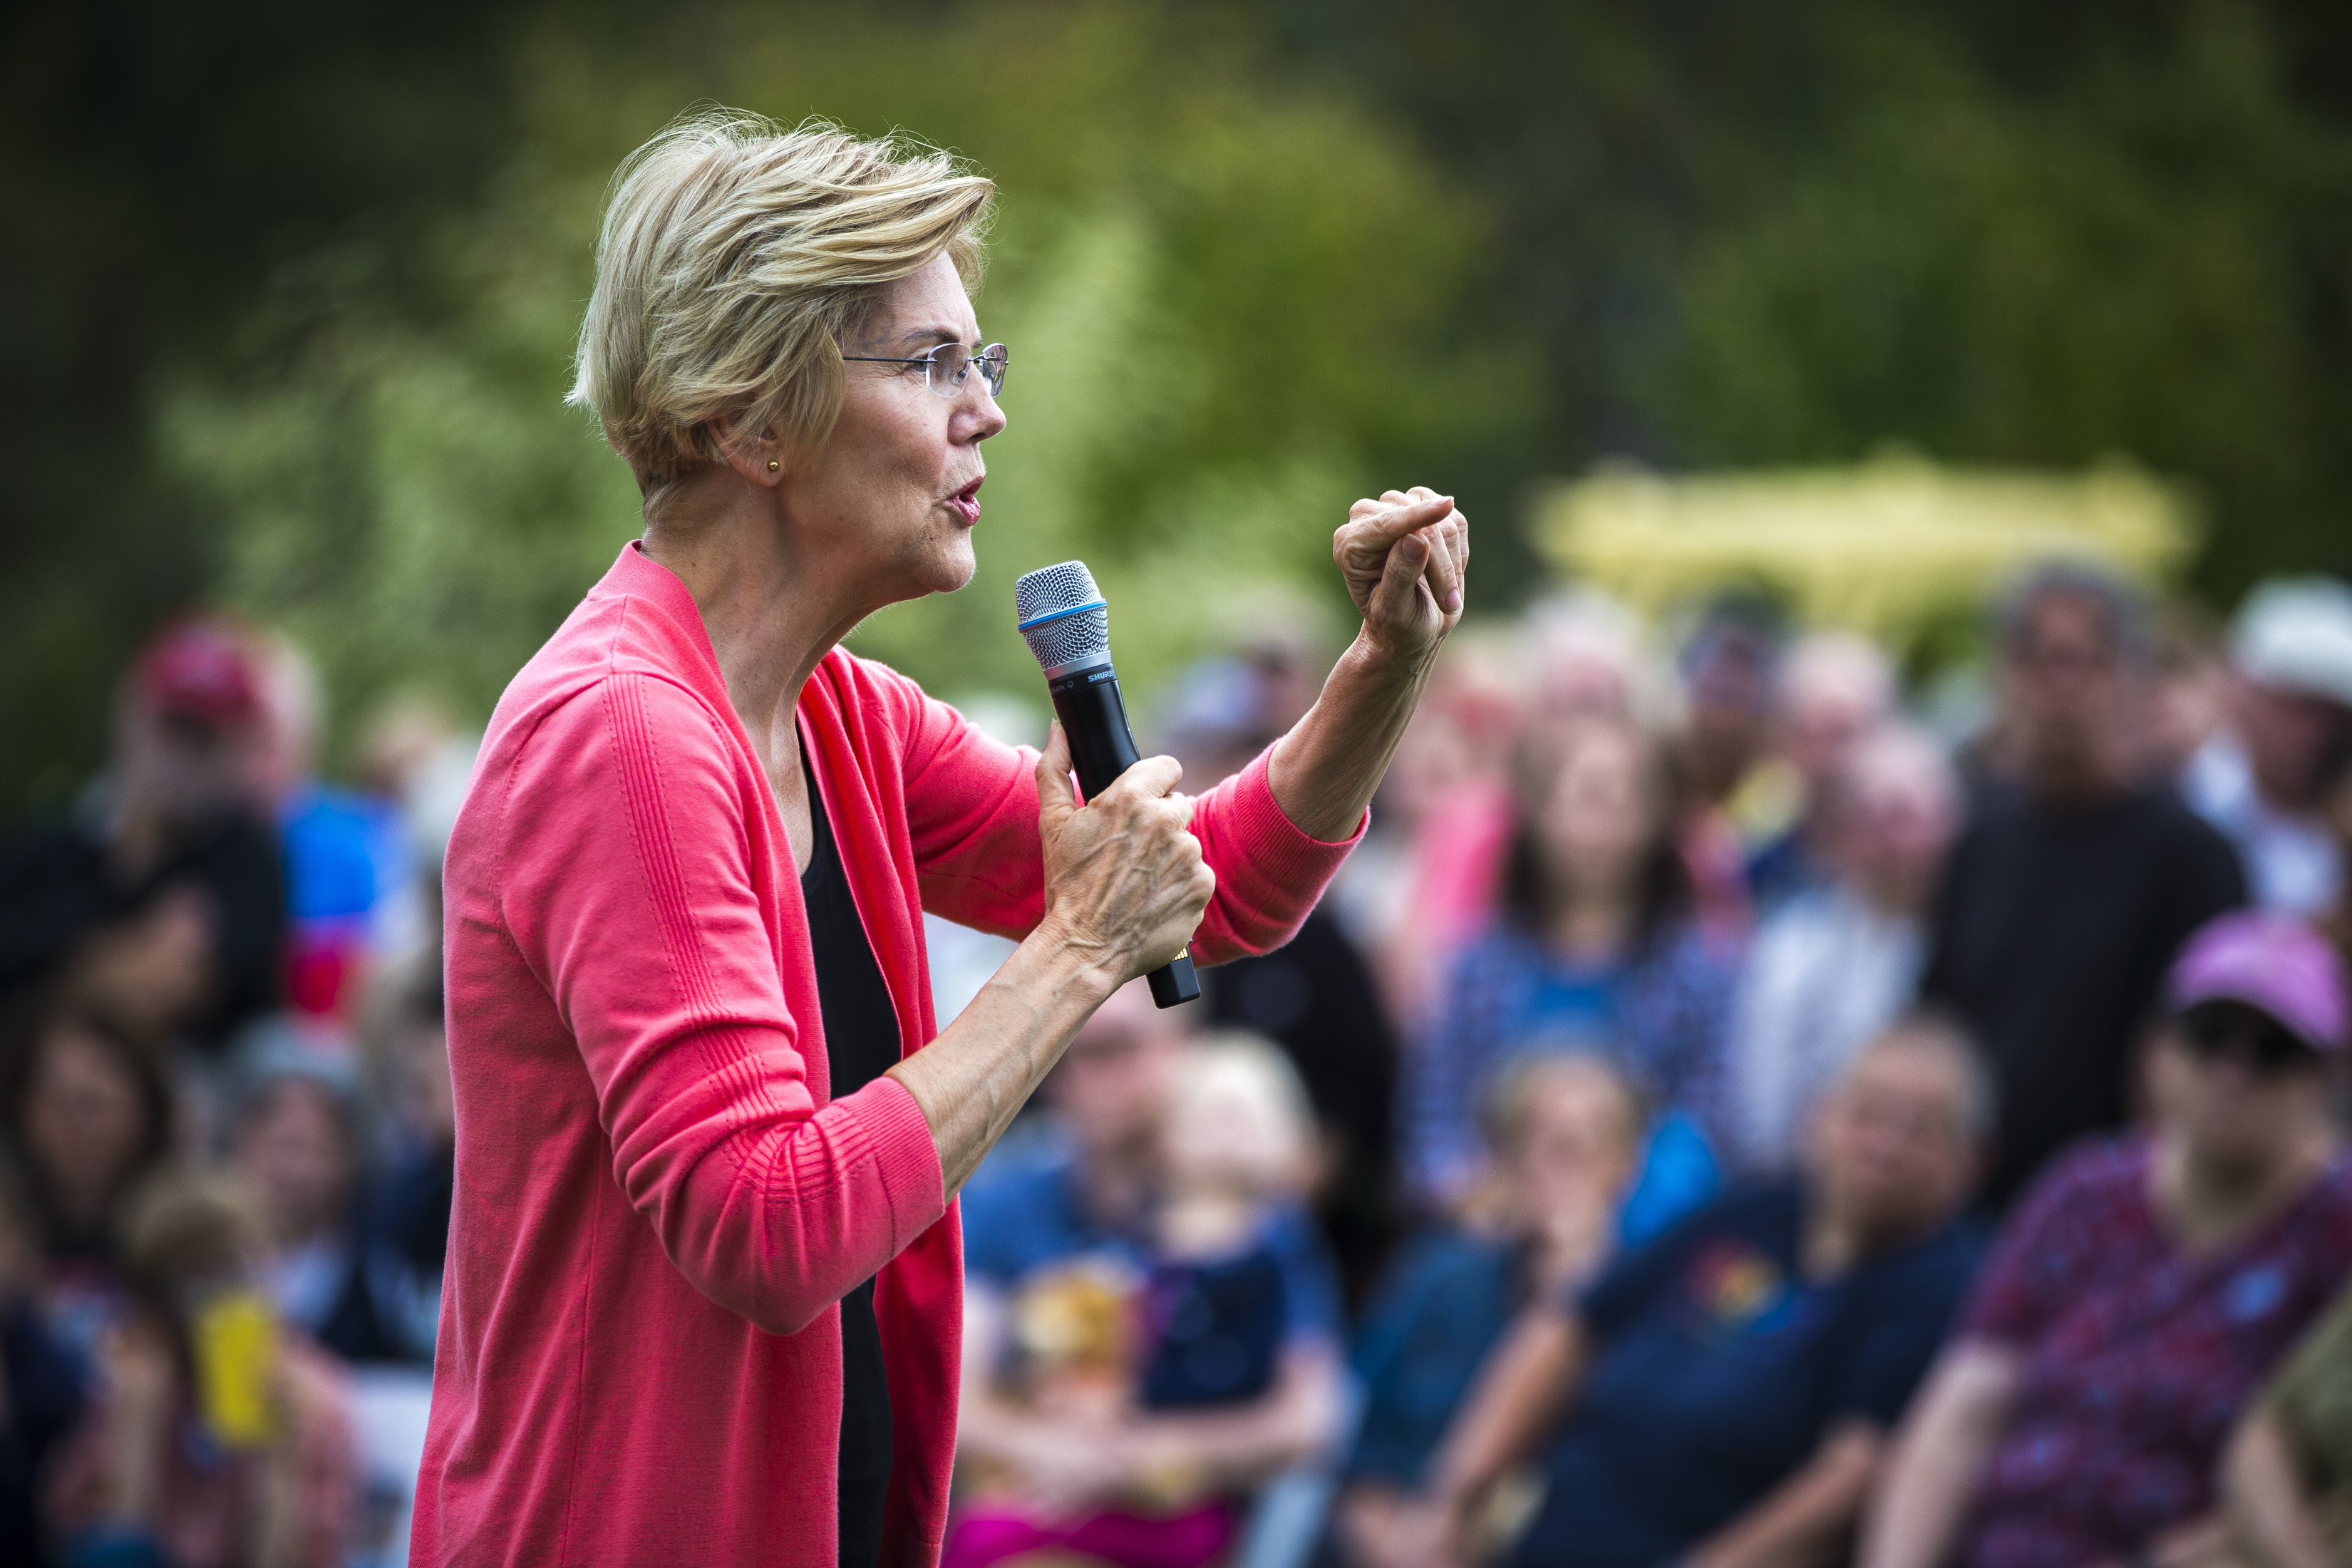 U.S. Senator And Presidential Candidate Elizabeth Warren Campaigns In NH